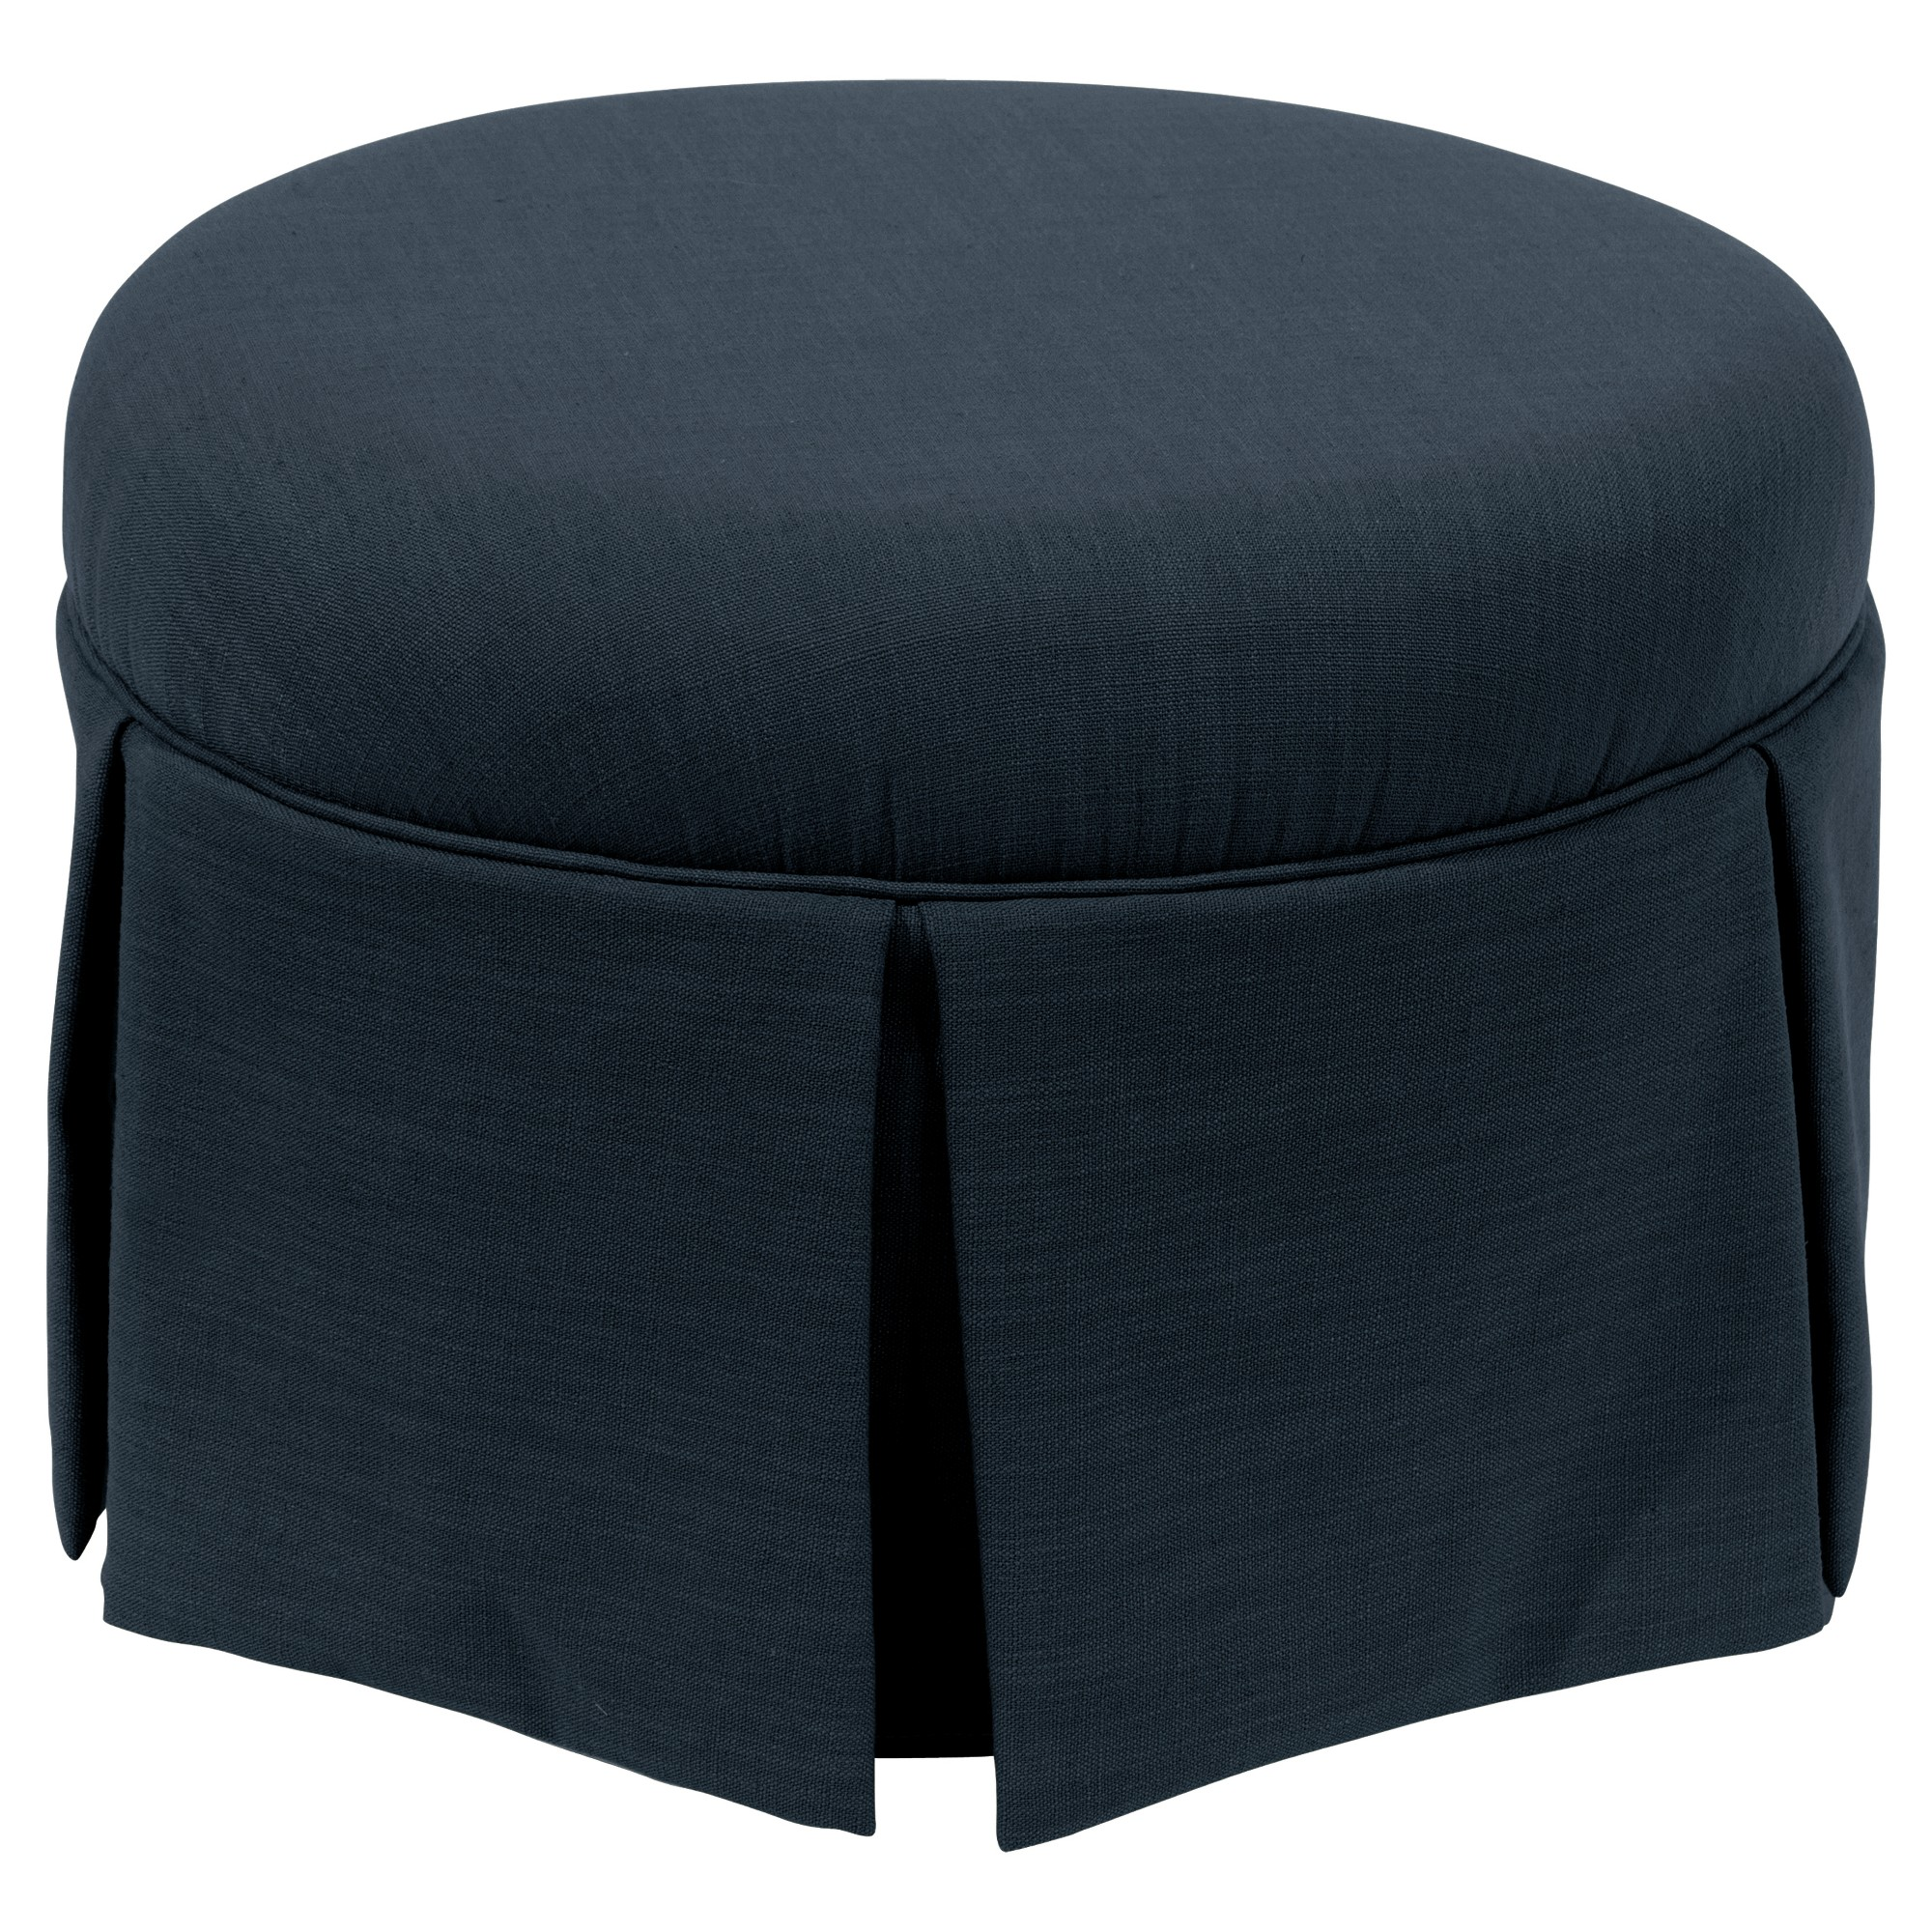 Round Skirted Ottoman in Linen Navy - Skyline Furniture